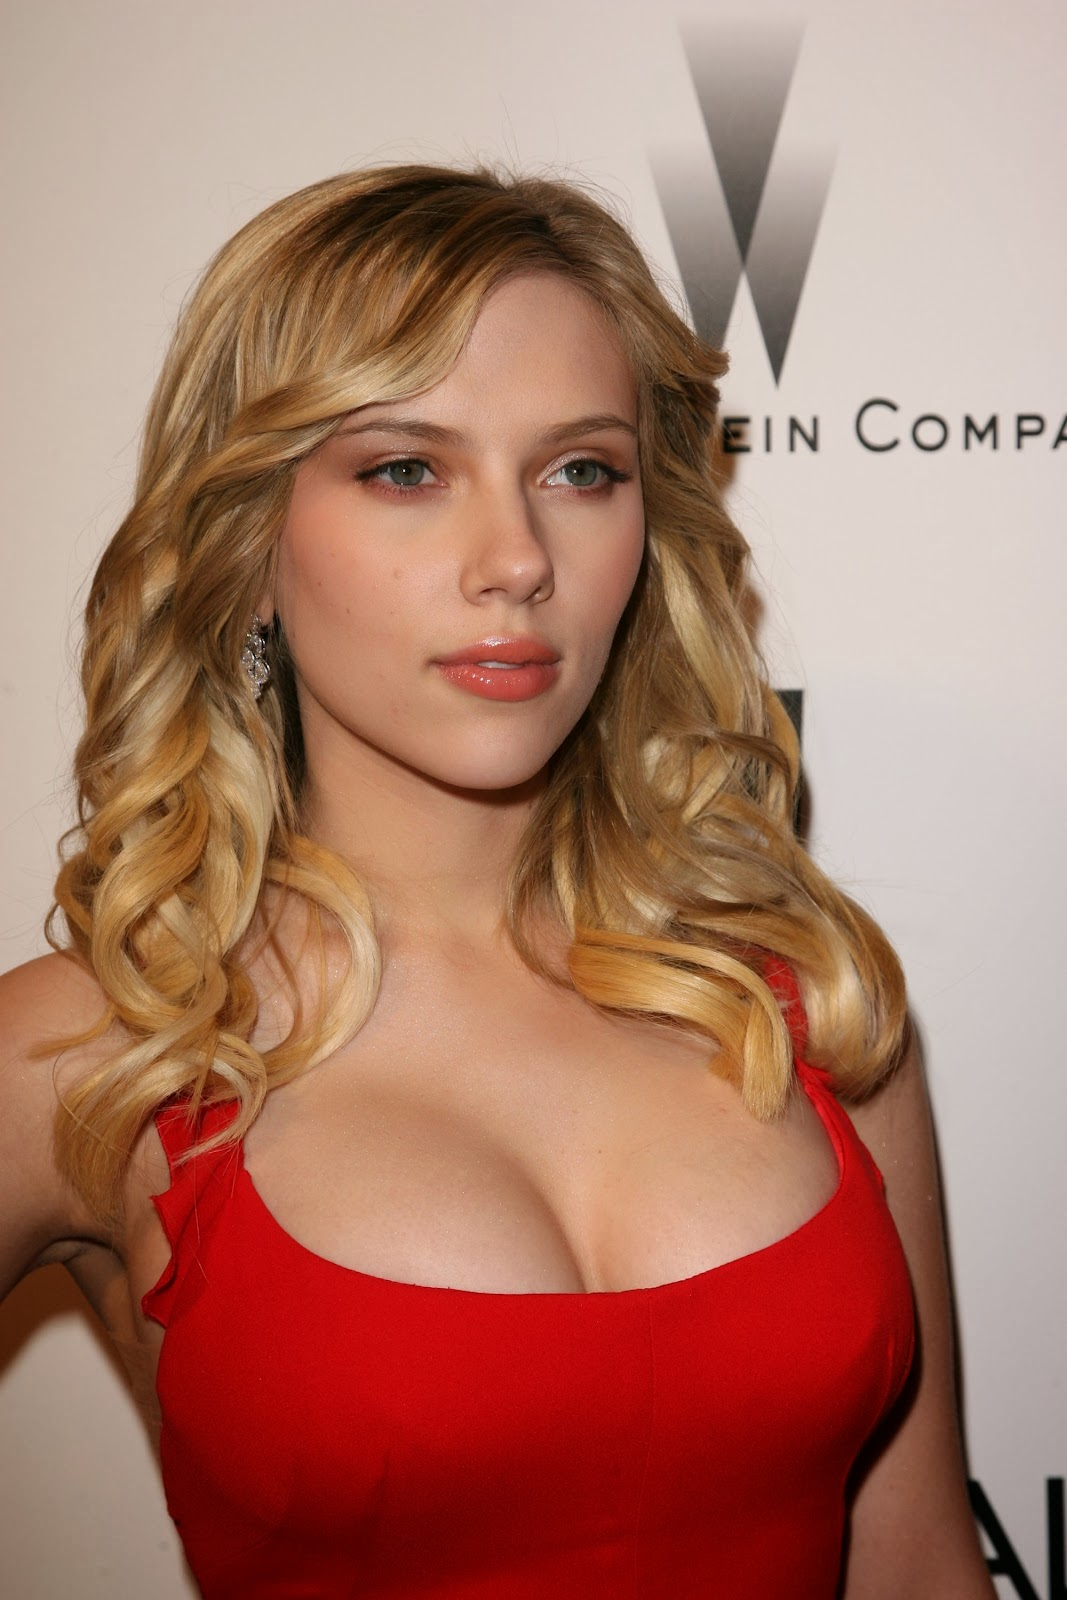 Cleavage Ruby Johansson nudes (66 photo), Paparazzi